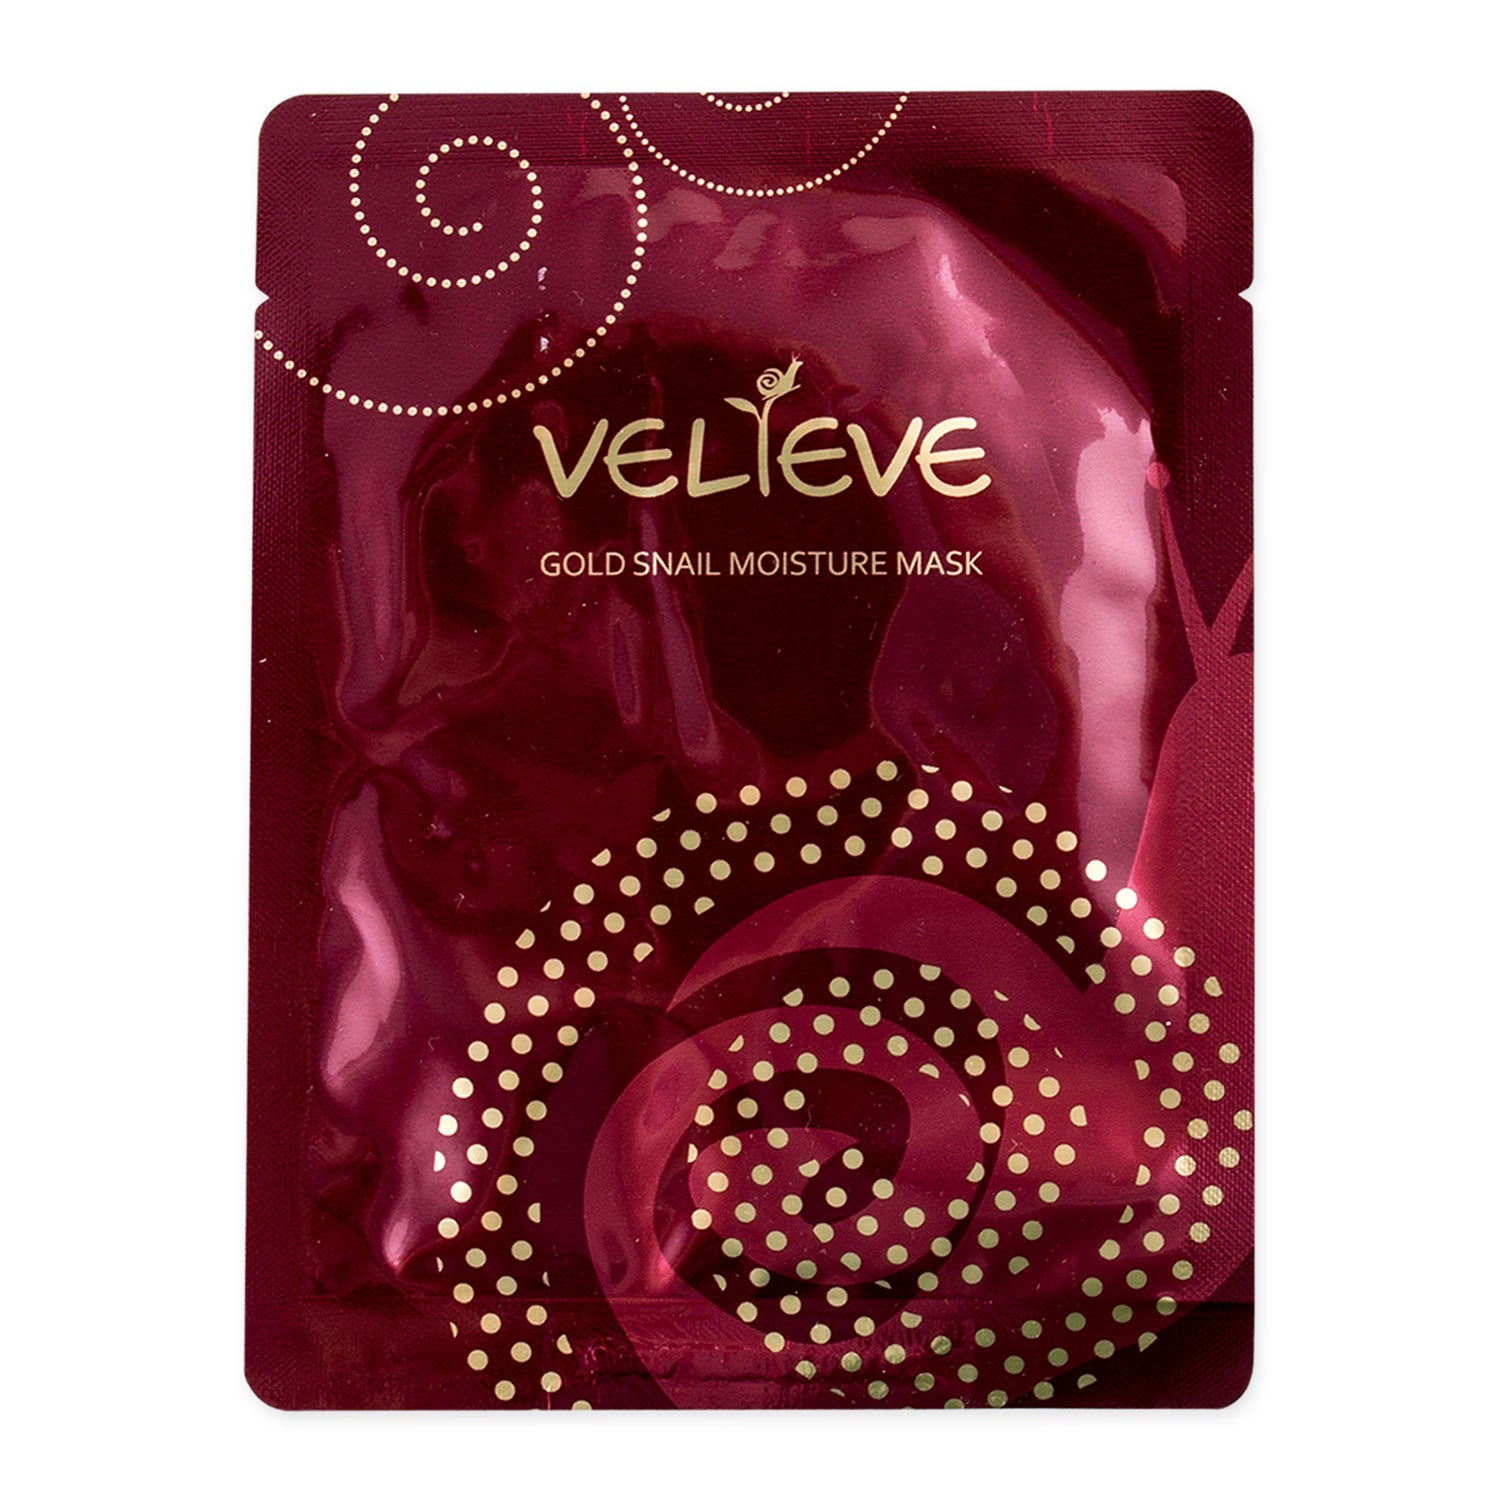 BELLAMONSTER Velieve Gold Snail Moisture Mask, sheetmask,Velieve, asian skincare